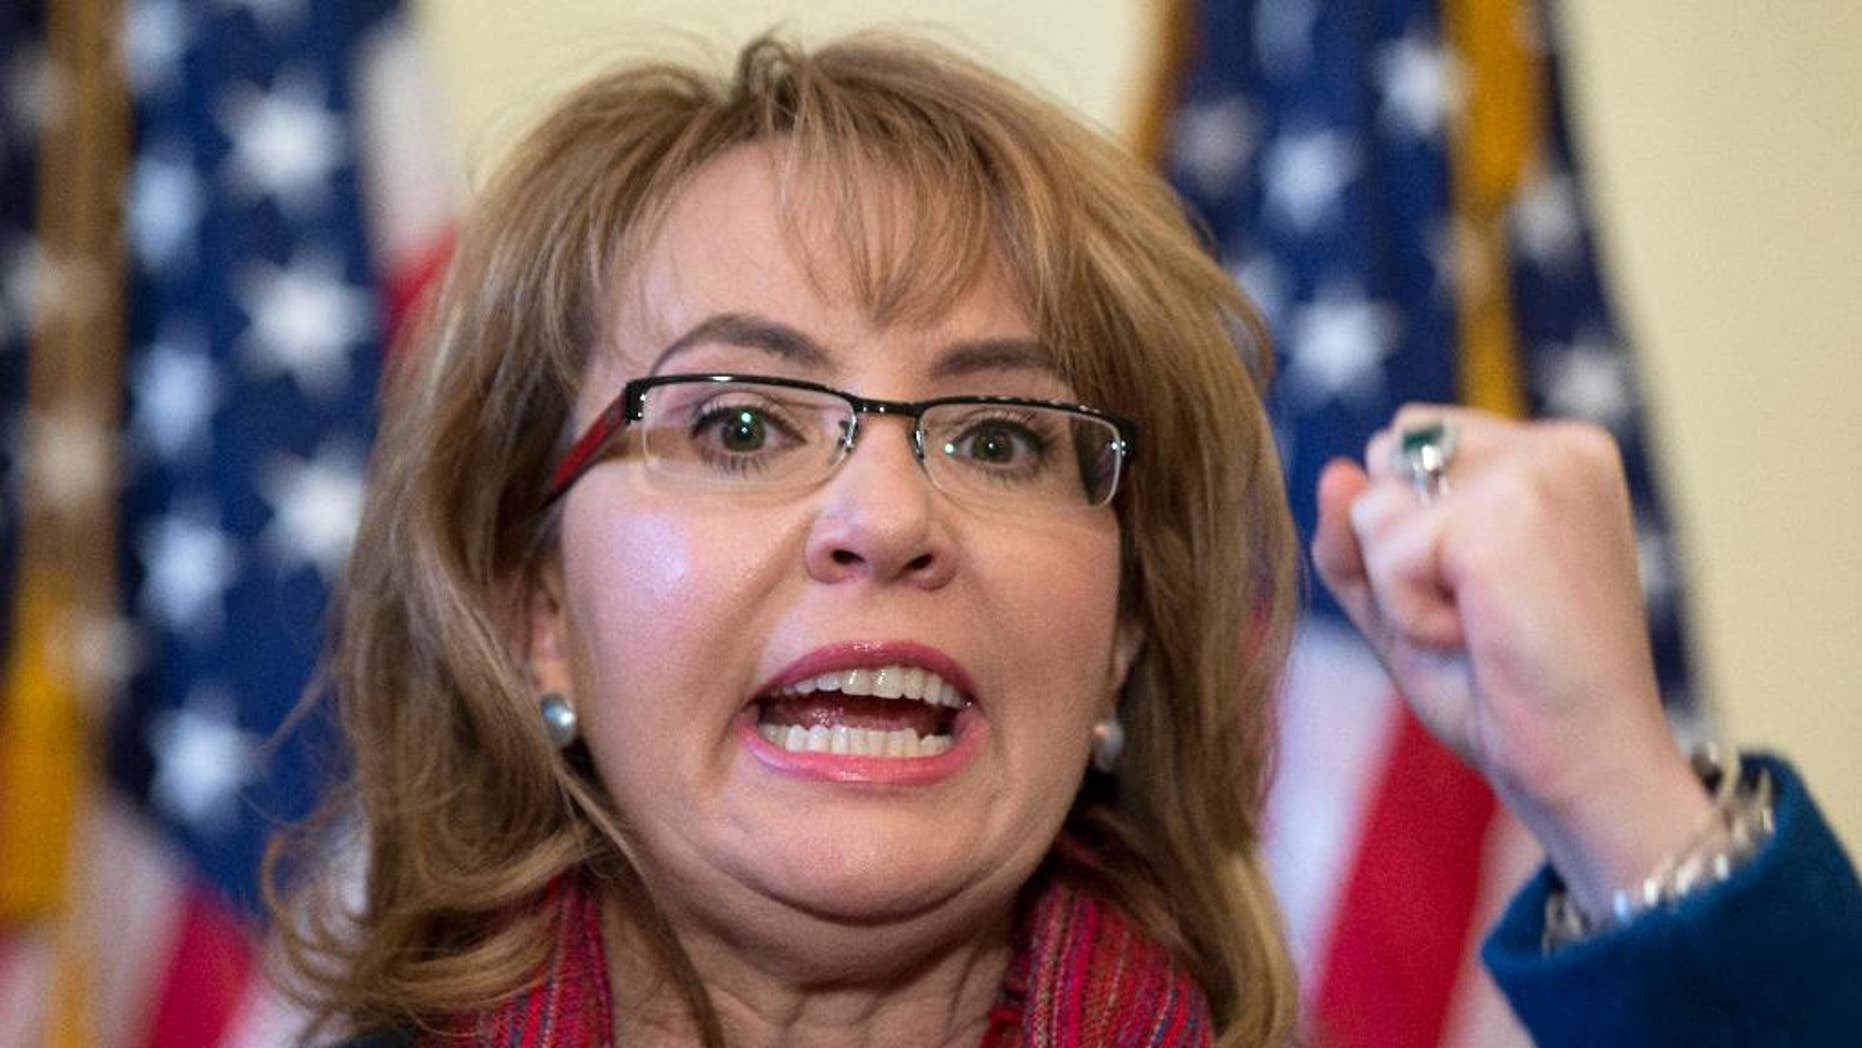 """FILE - In this March 4, 2015, file photo, former U.S. Rep. Gabrielle """"Gabby"""" Giffords of Arizona gestures as she speaks on Capitol Hill in Washington. Giffords is being recognized with a Navy ship named in her honor at a shipyard in Mobile, Alabama. Giffords is set to attend the Saturday, June 13, 2015,  christening of the USS Gabrielle Giffords.  (AP Photo/Carolyn Kaster, File)"""